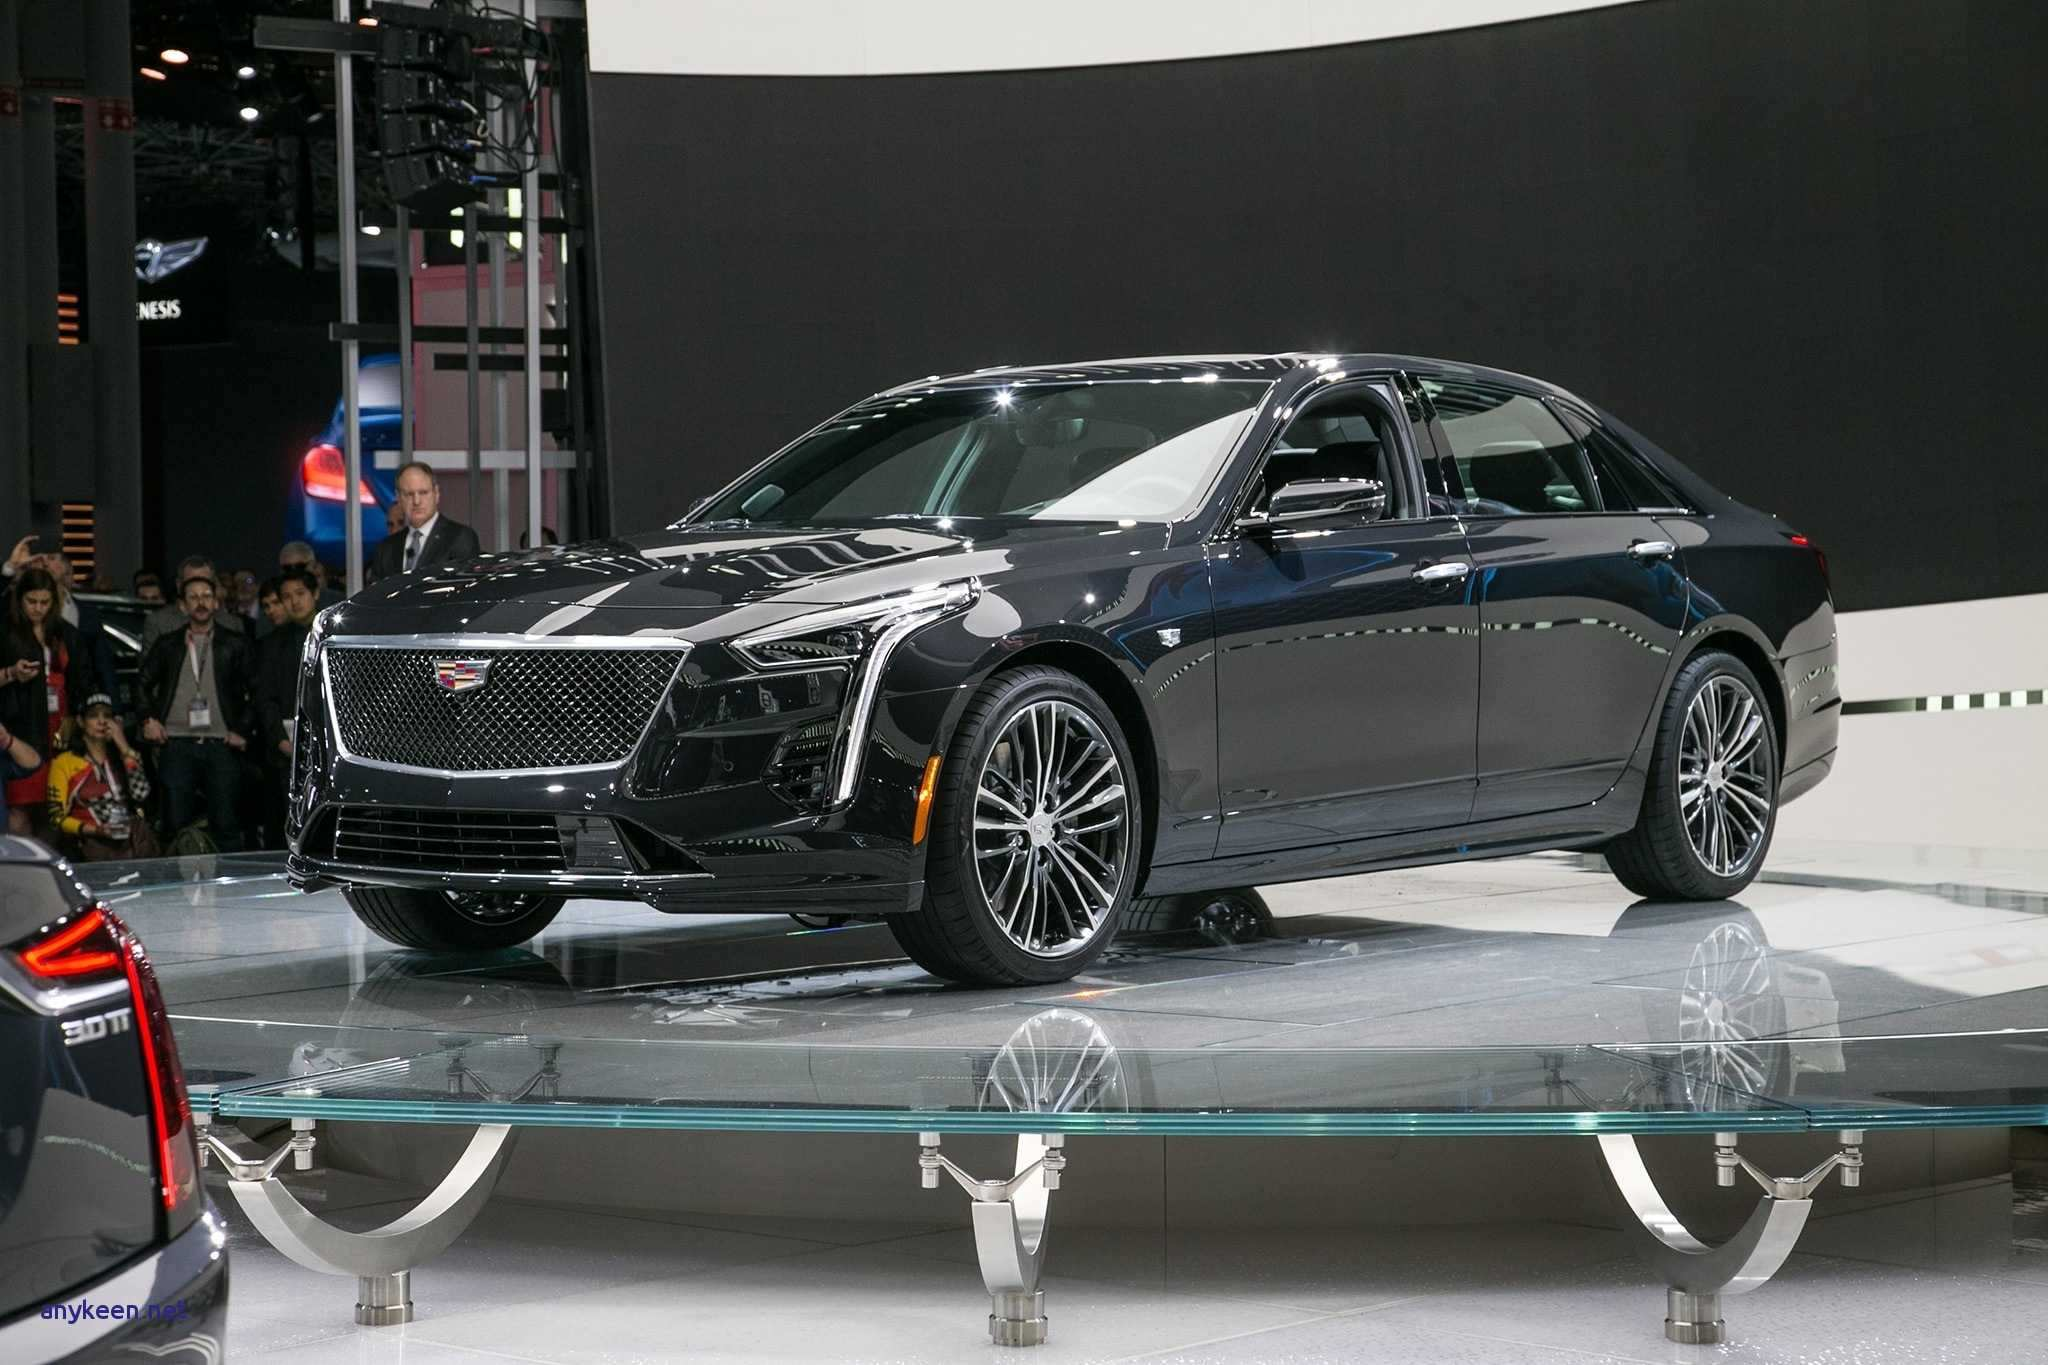 63 All New 2019 Cadillac Releases Interior for 2019 Cadillac Releases